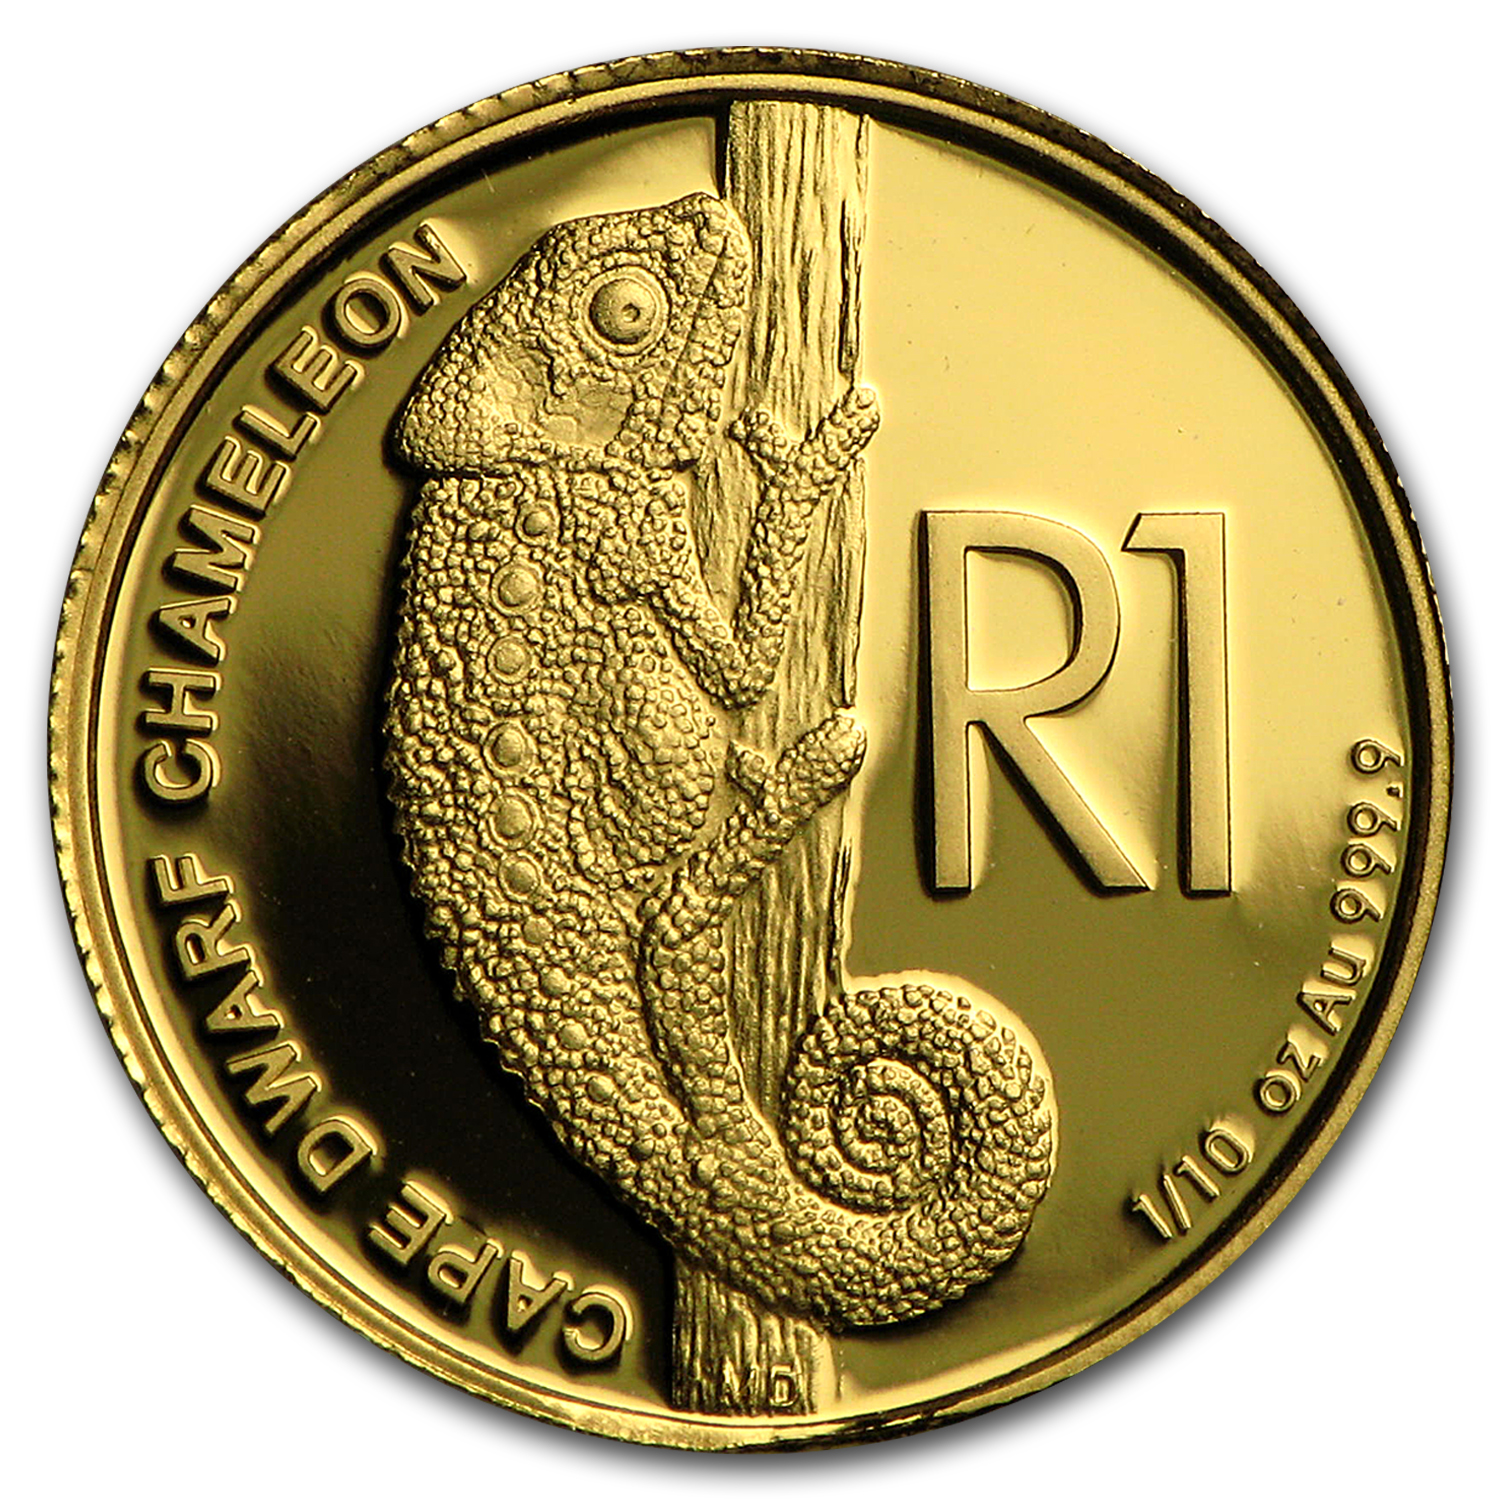 2016 South Africa 1/10 oz Gold Reptiles of S. Africa (Chameleon)